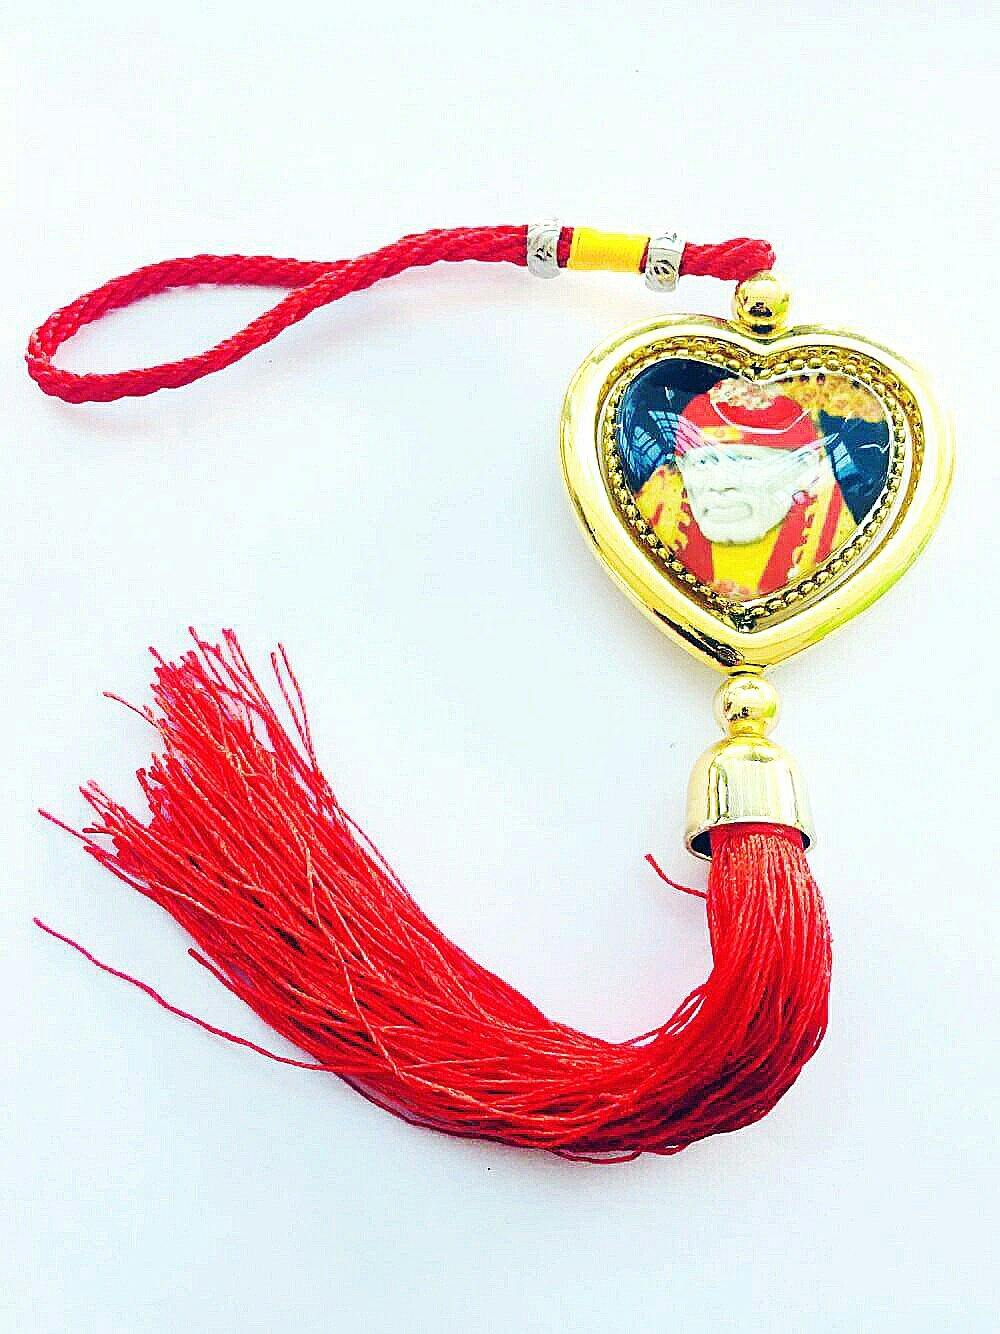 Lord SAIBABA Yantra (Vehicle Accident Protection Yantra) Car Hanging for Wealth and Safe, Ward Off Evil, Protect Peace Car Hanging Door Hanging Wall Hanging Good Luck Blessings